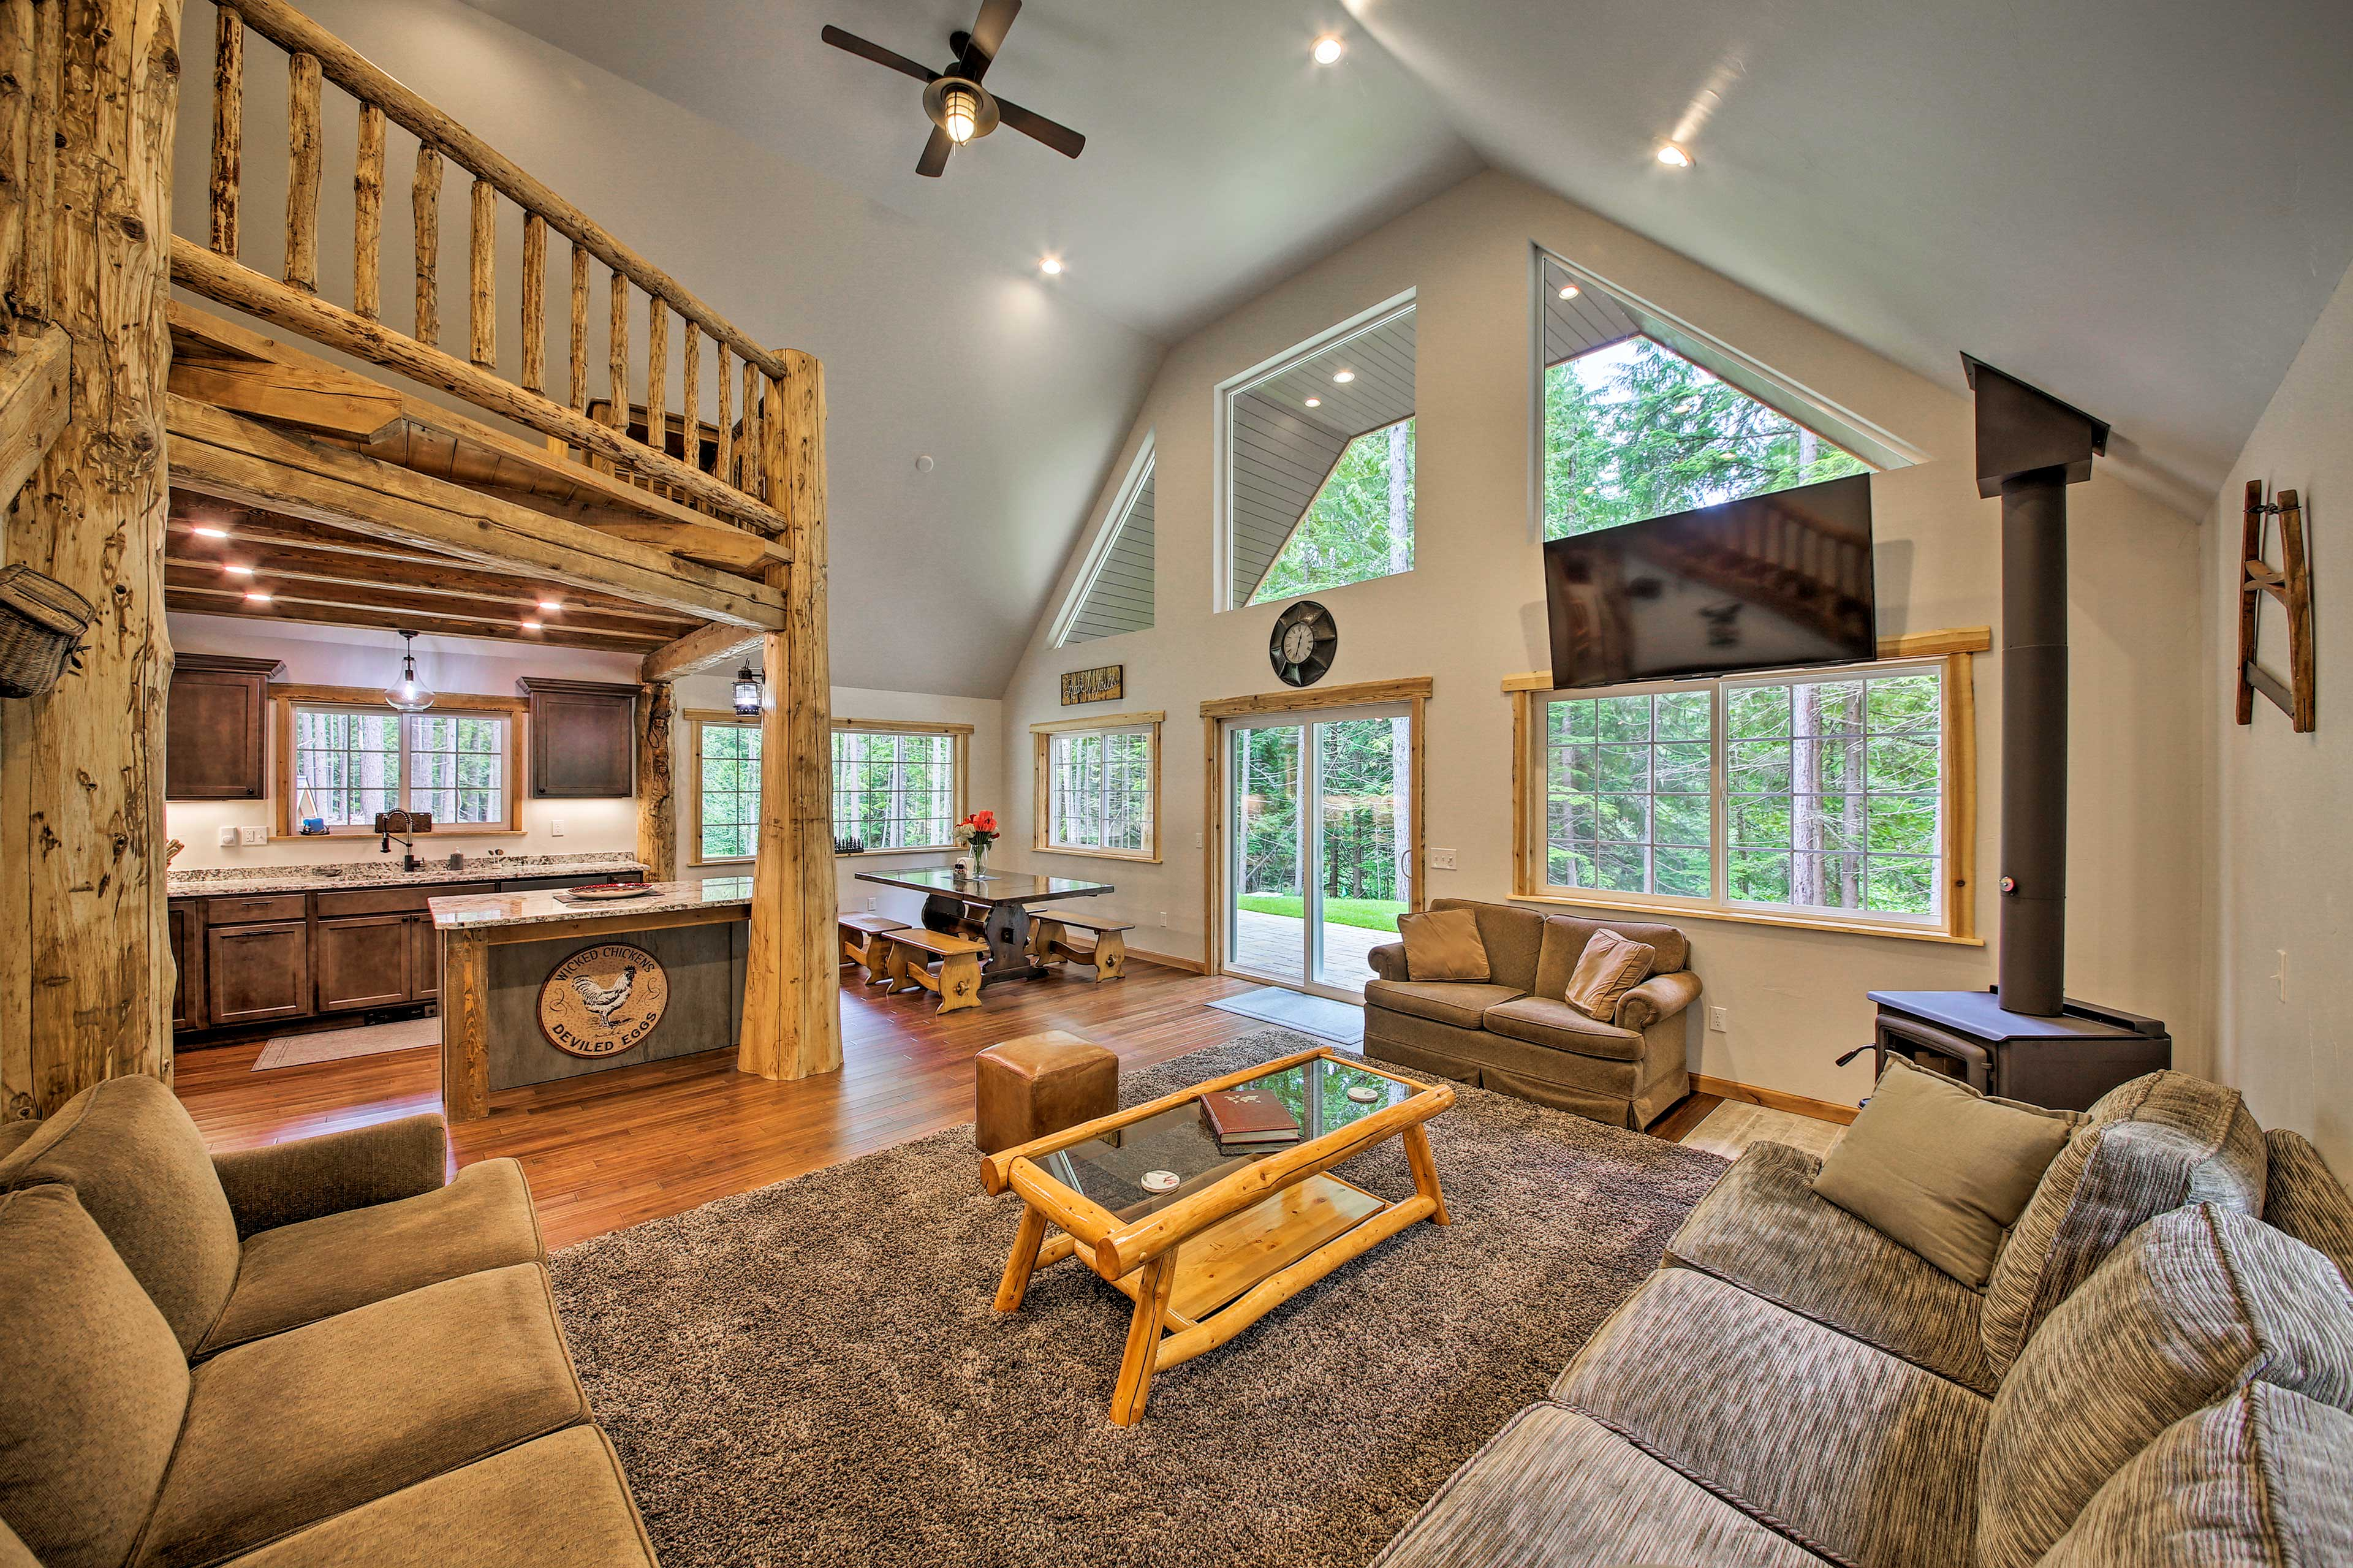 The beautiful interior spans 1,570 square feet.